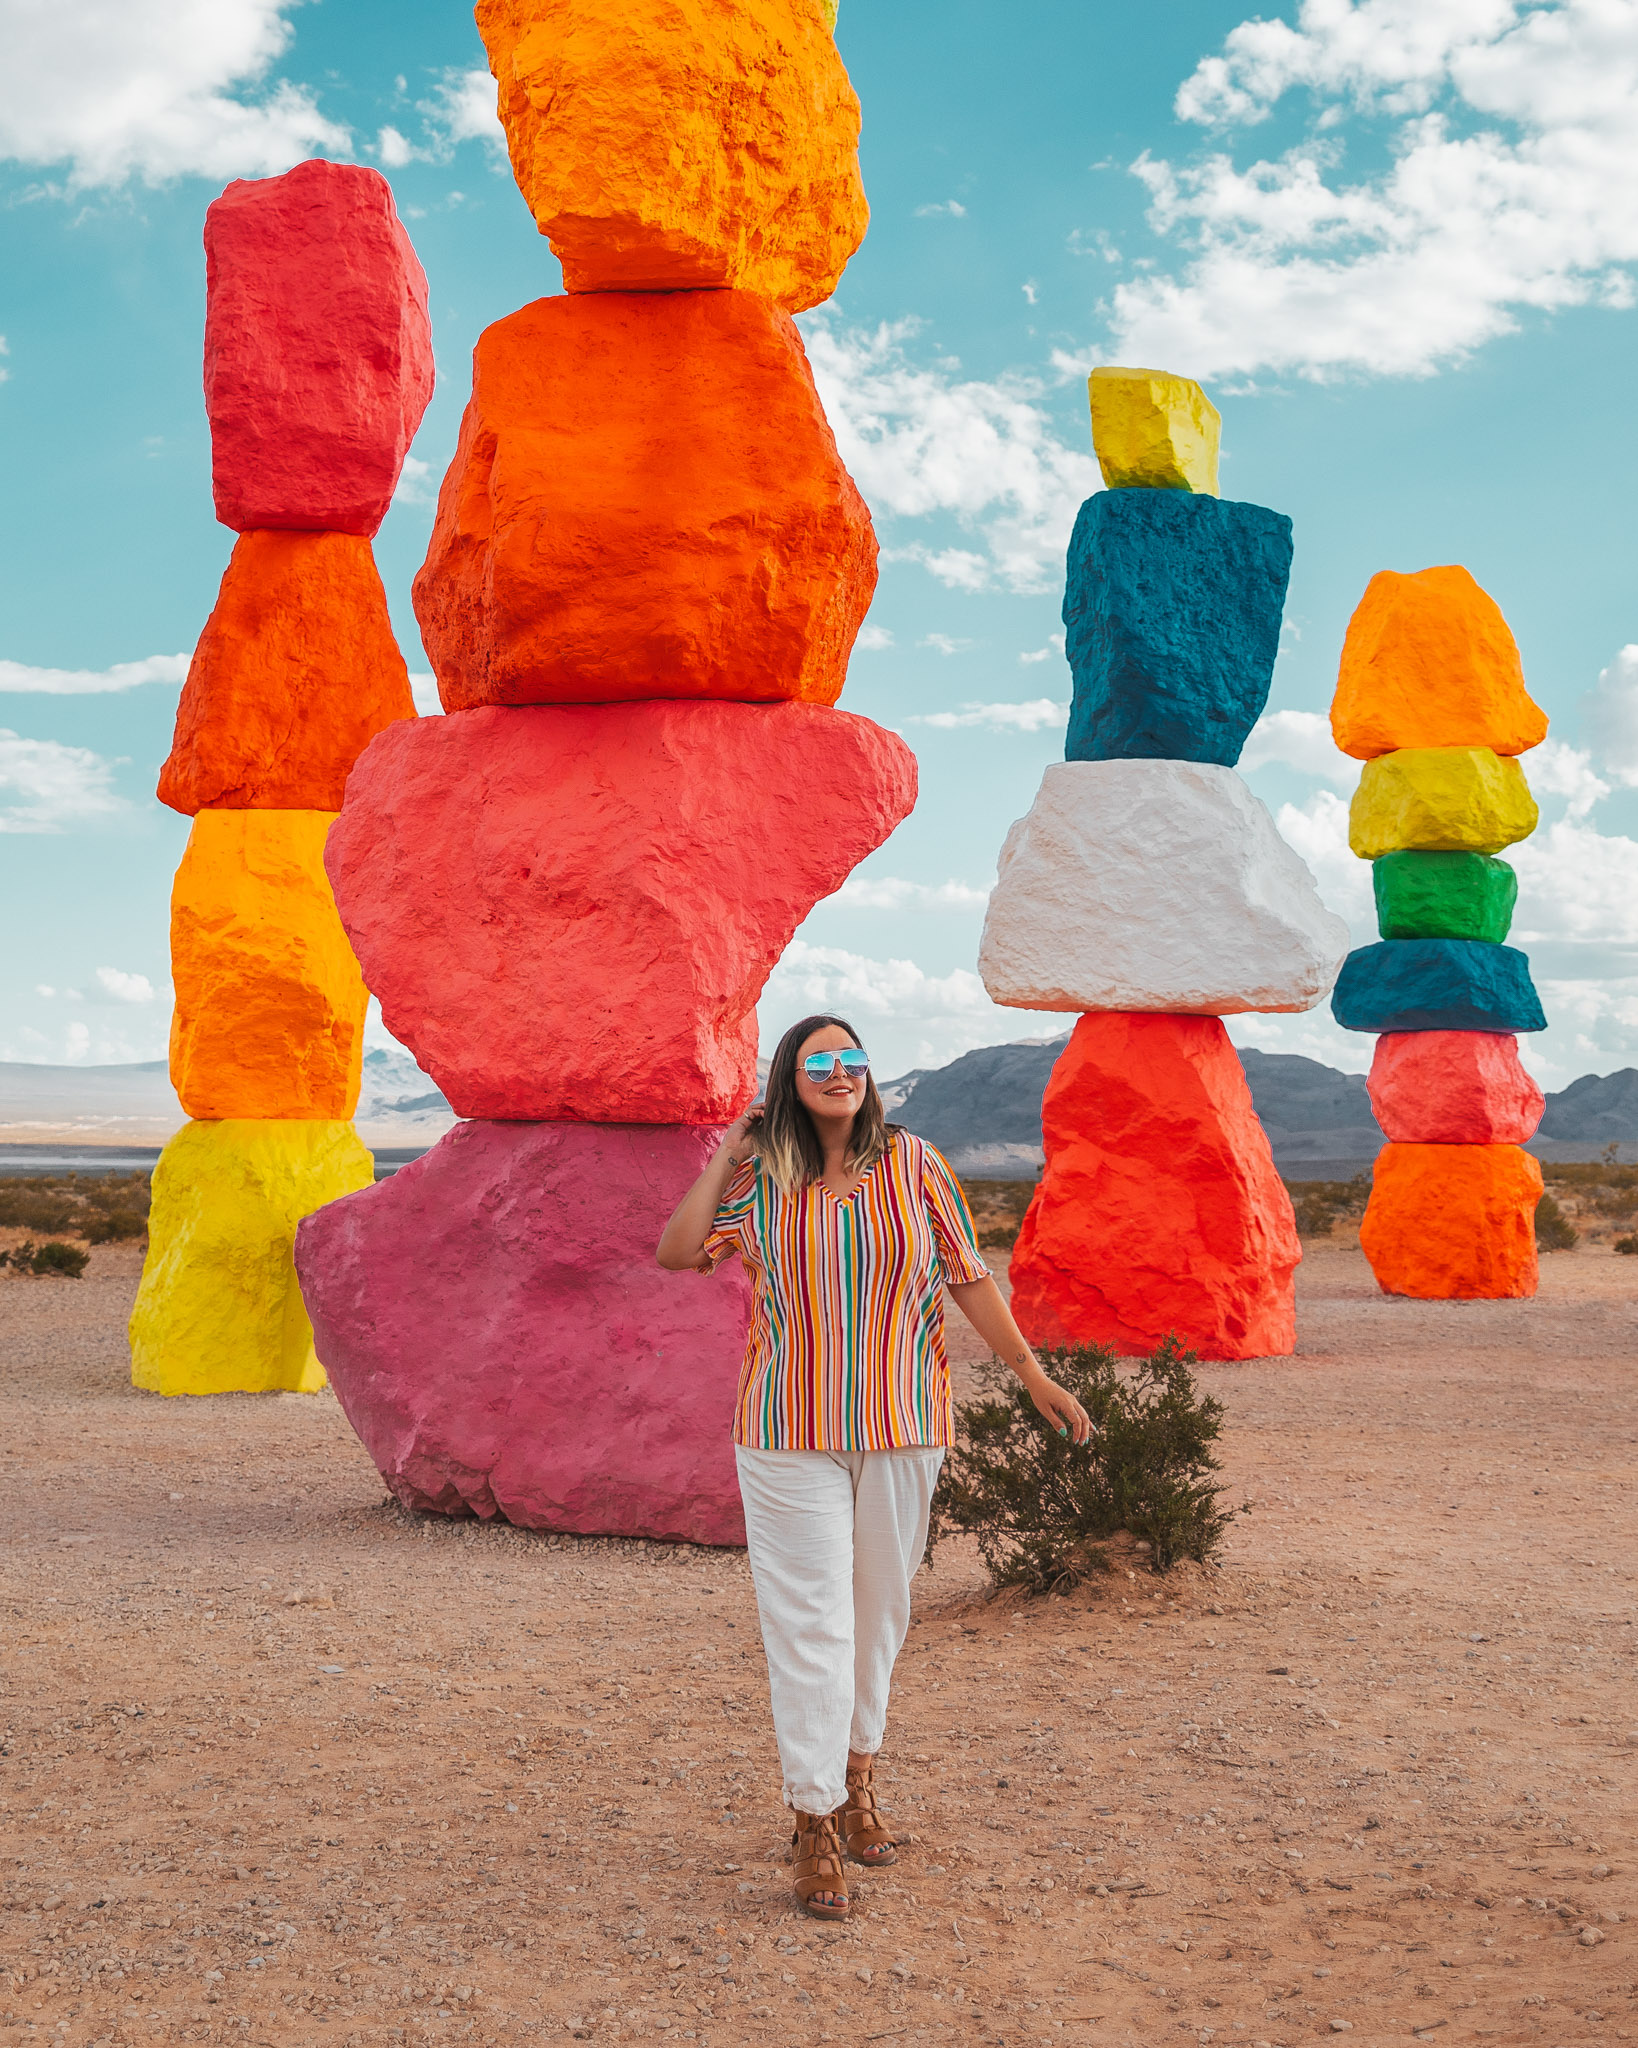 Seven Magic Mountains Las Vegas // The Quick Guide to Visiting Vegas Beyond the Strip #readysetjetset #lasvegas #nevada  #blogpost #travel #rainbow #color